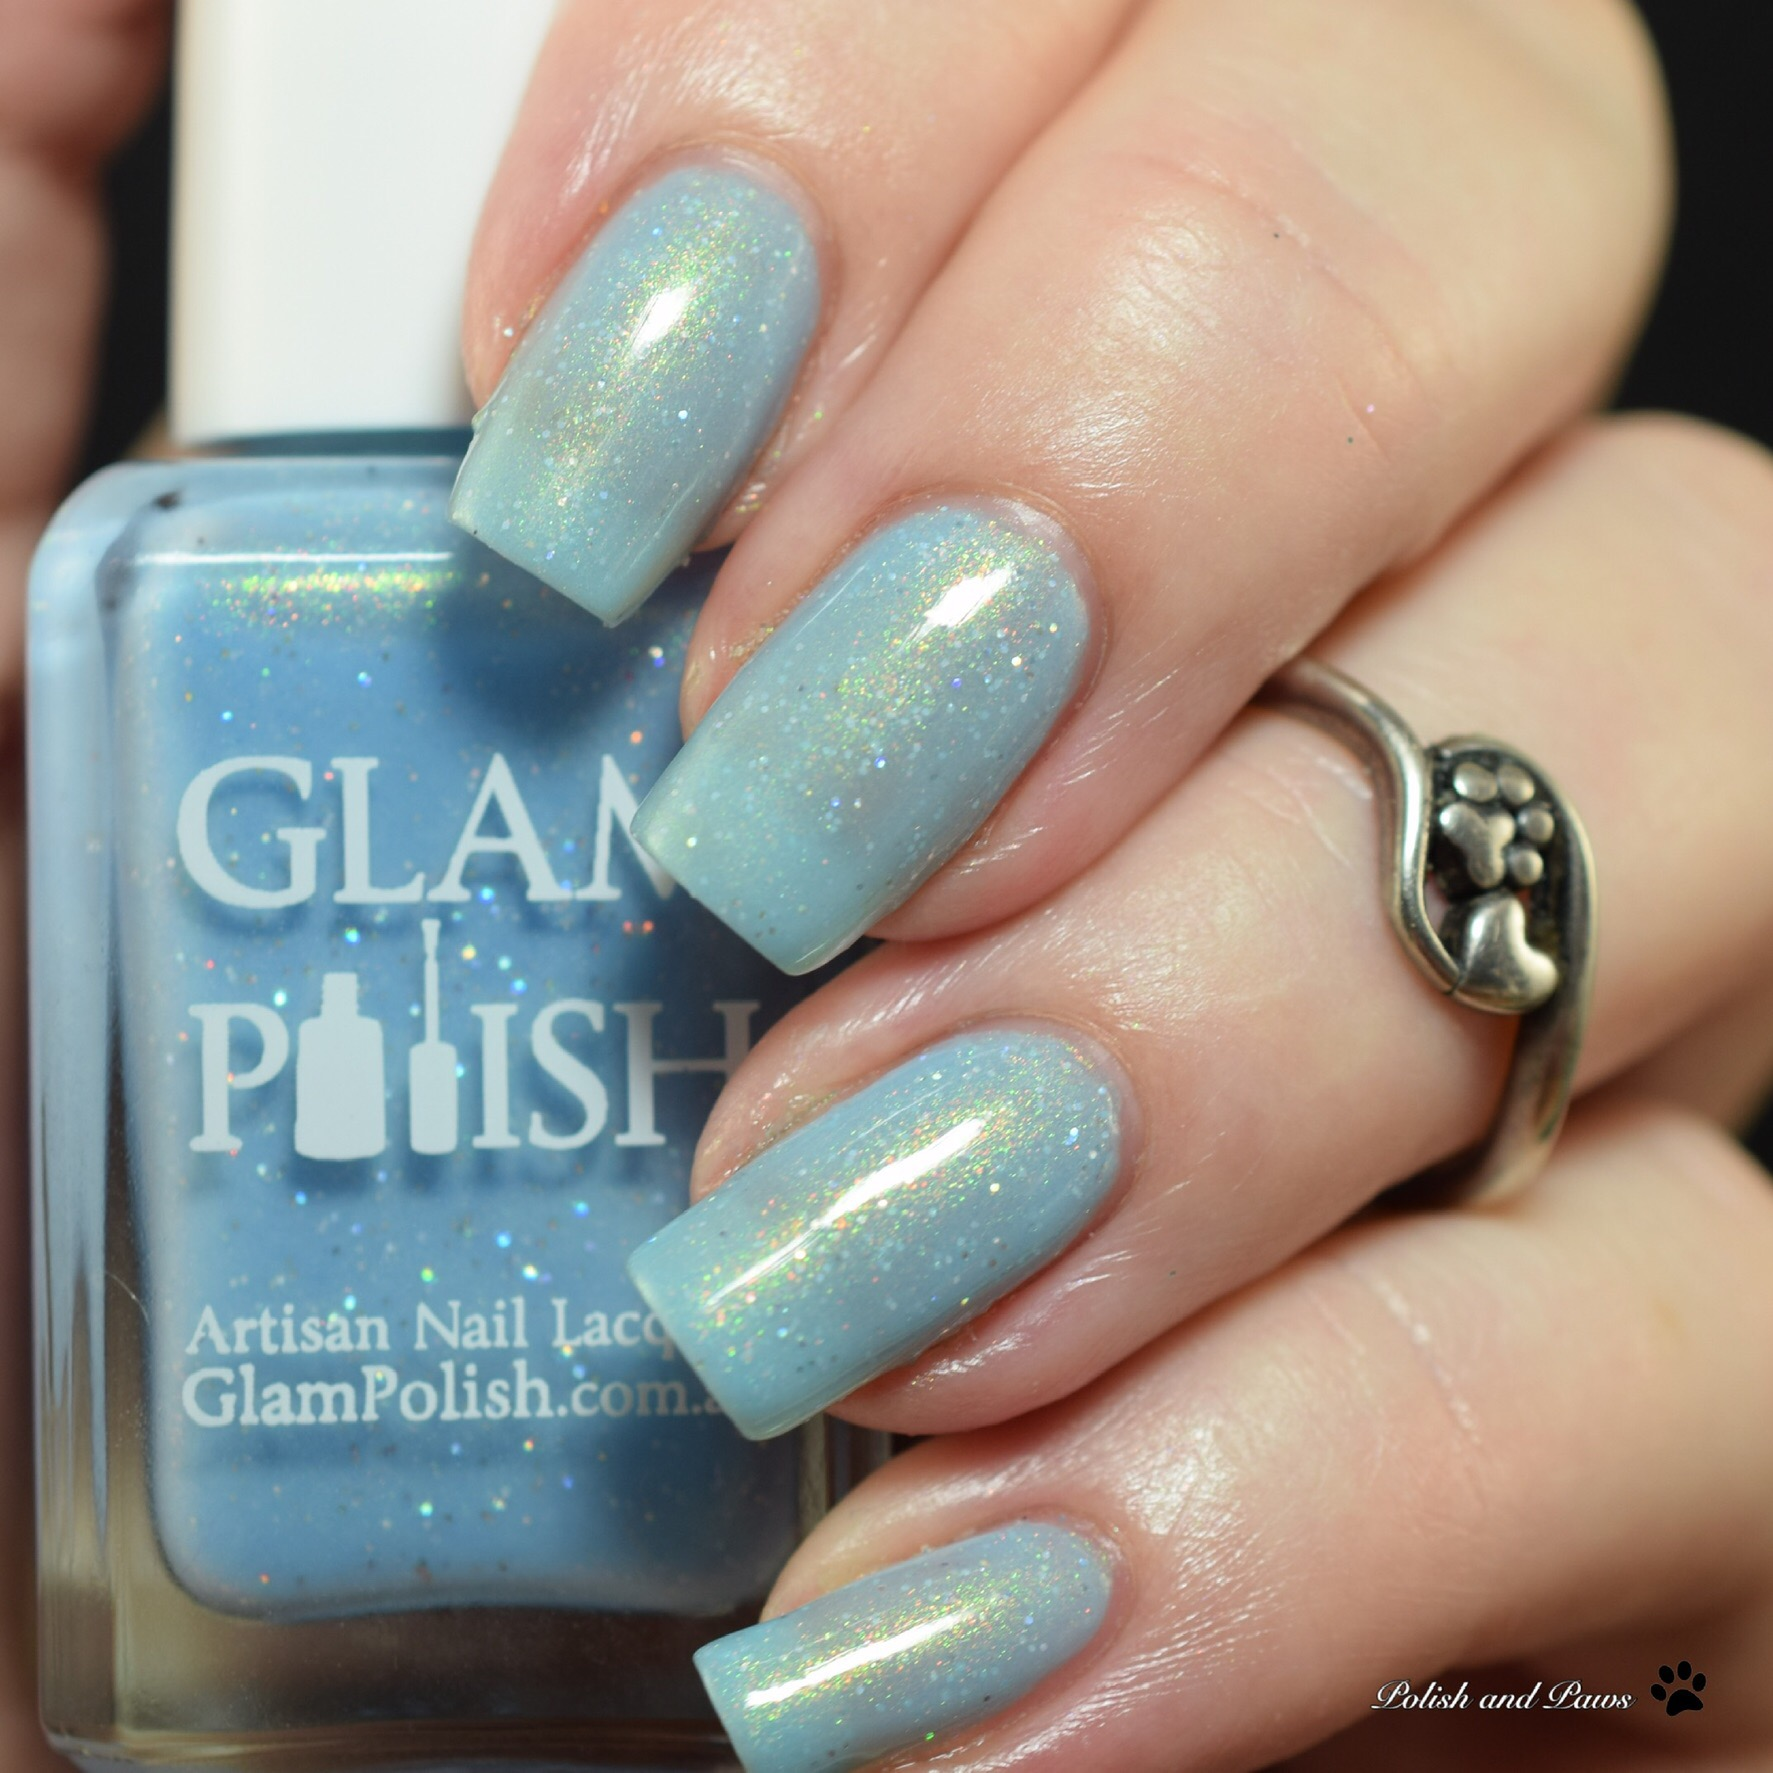 Glam Polish What to do? What to do? What to do?